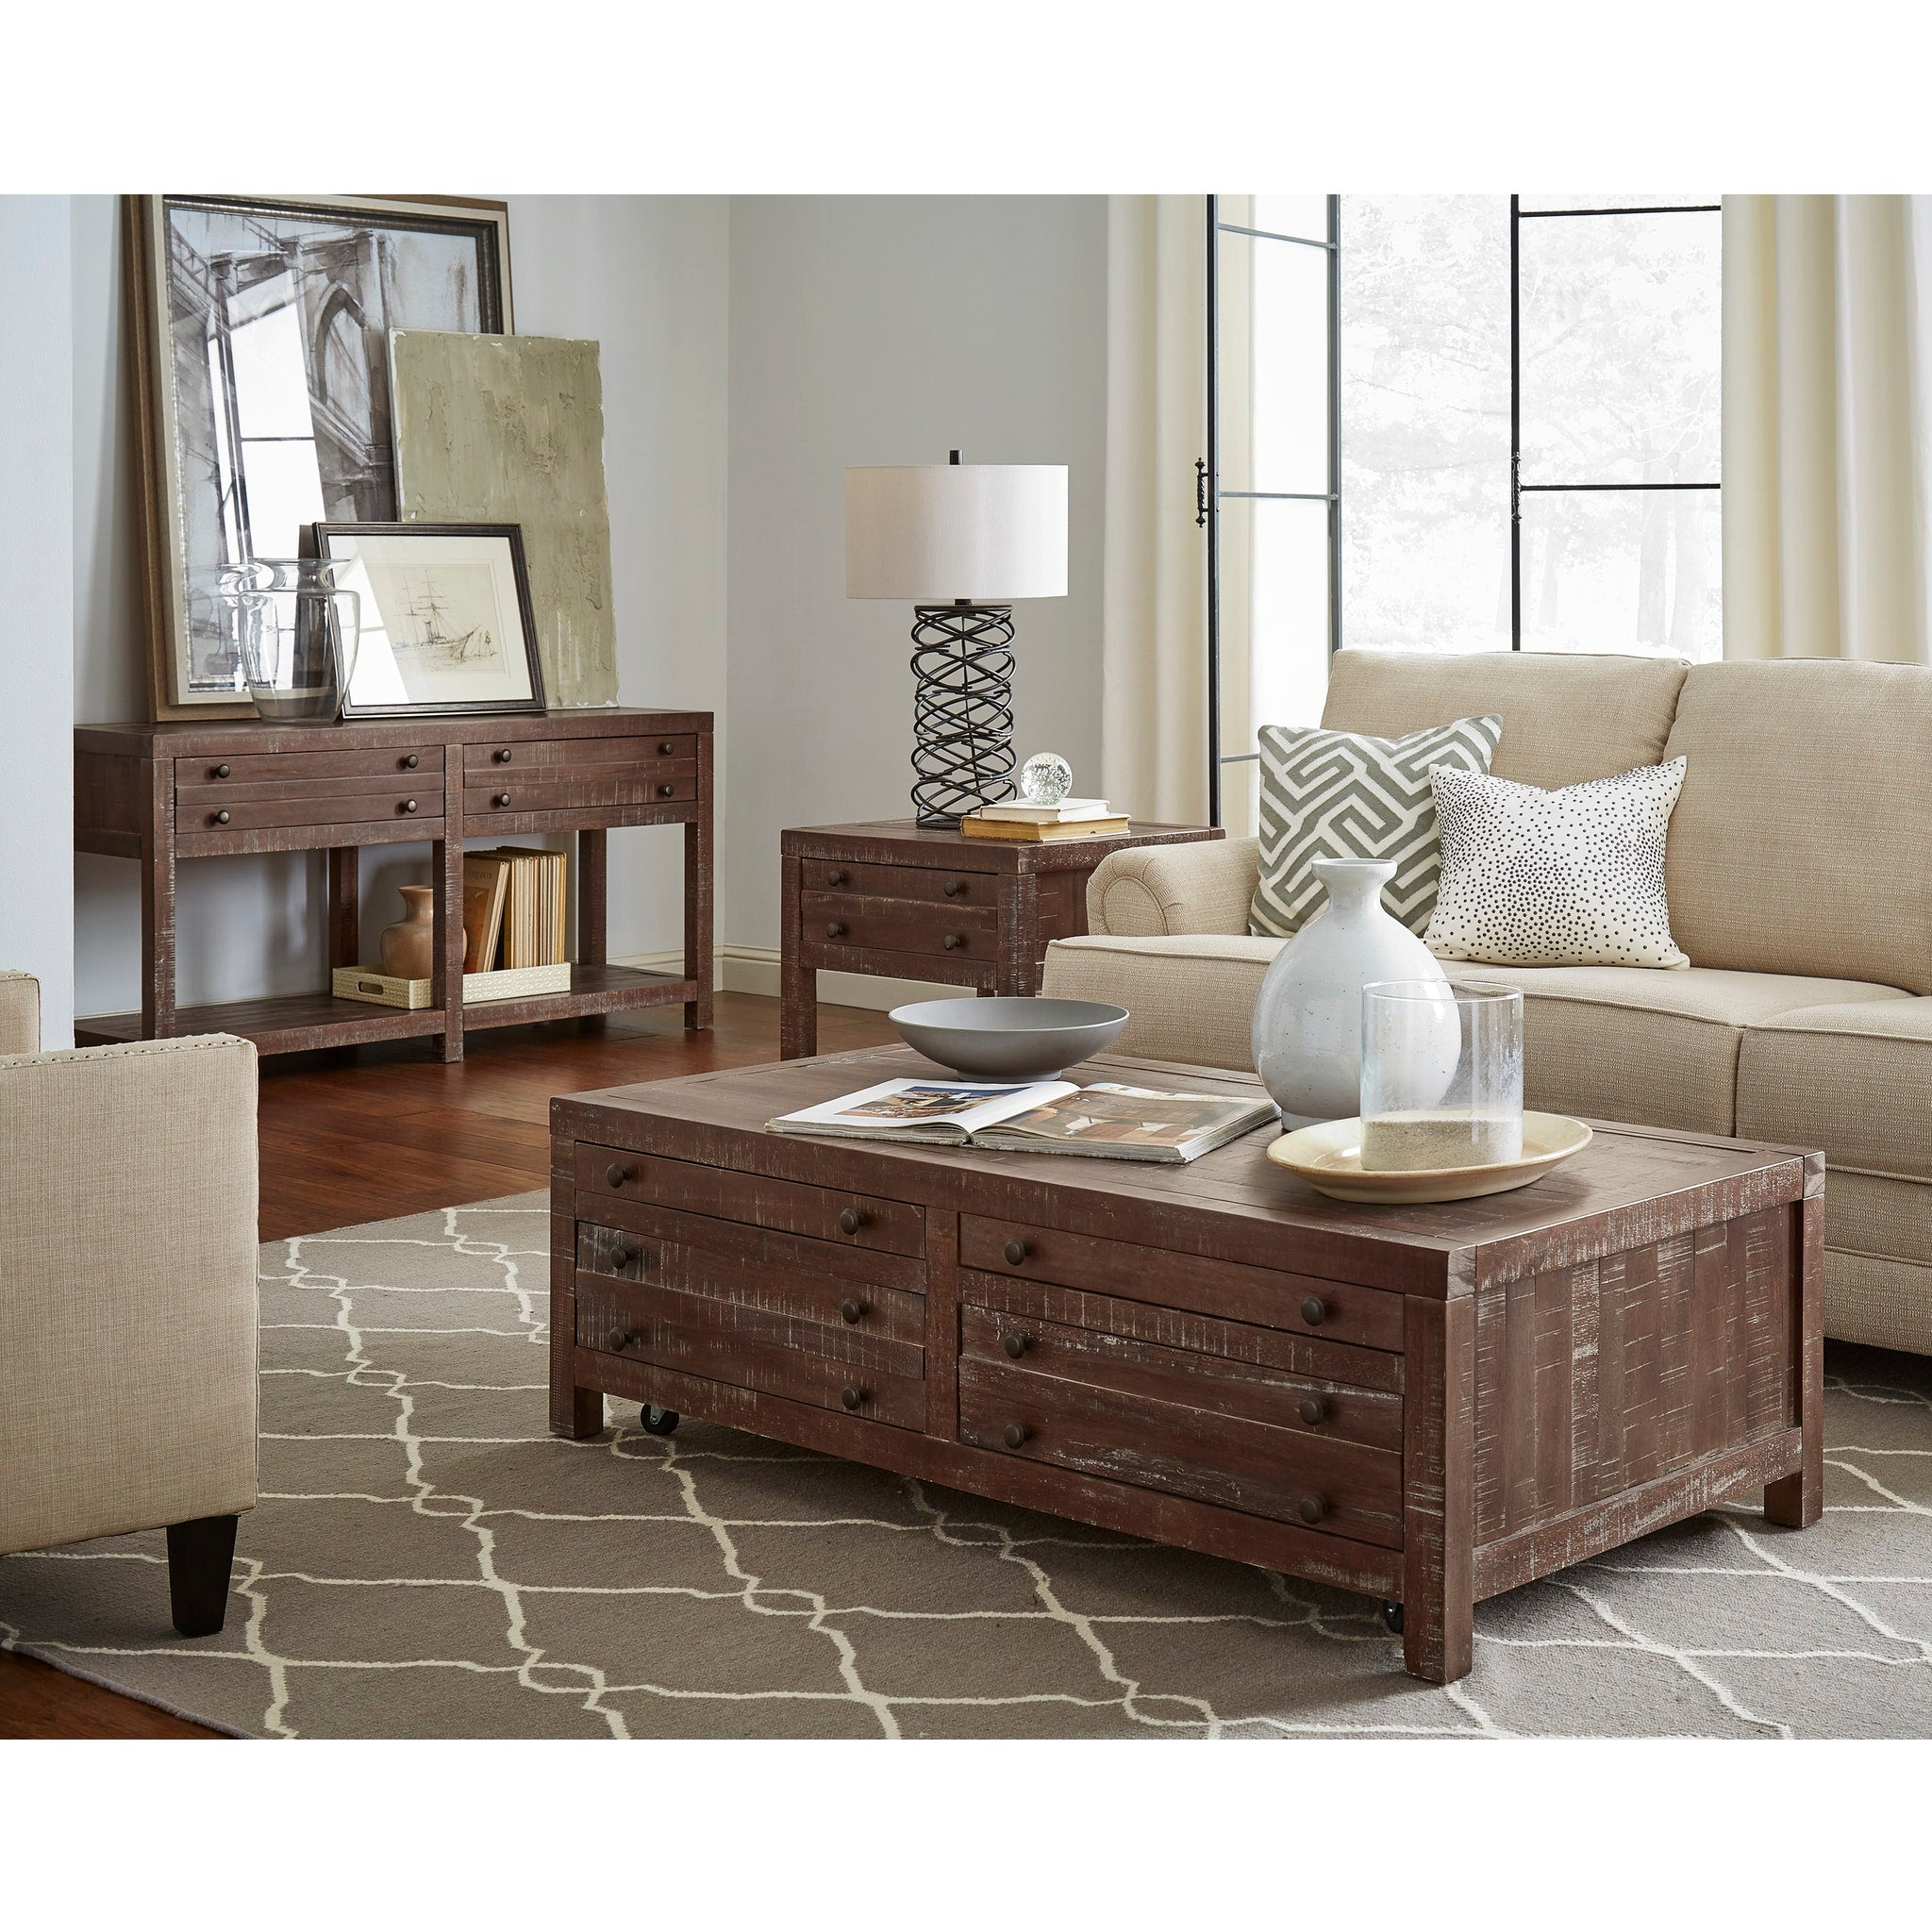 Townsend Solid Wood Castered Coffee Table in Java